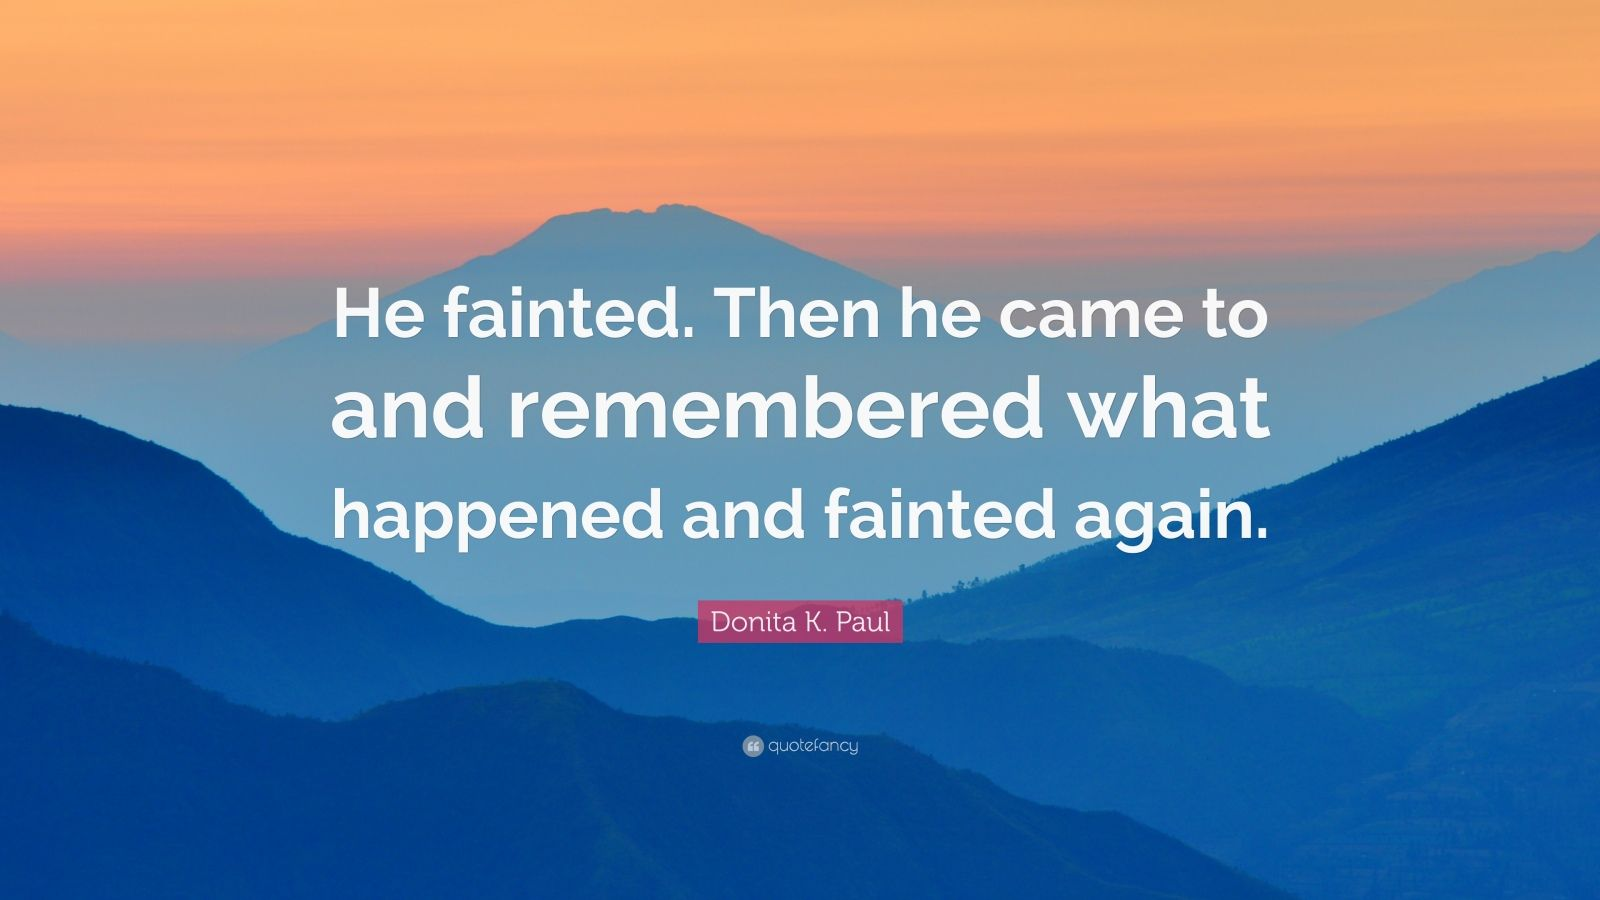 """Donita K. Paul Quote: """"He fainted. Then he came to and remembered what happened and fainted again."""""""